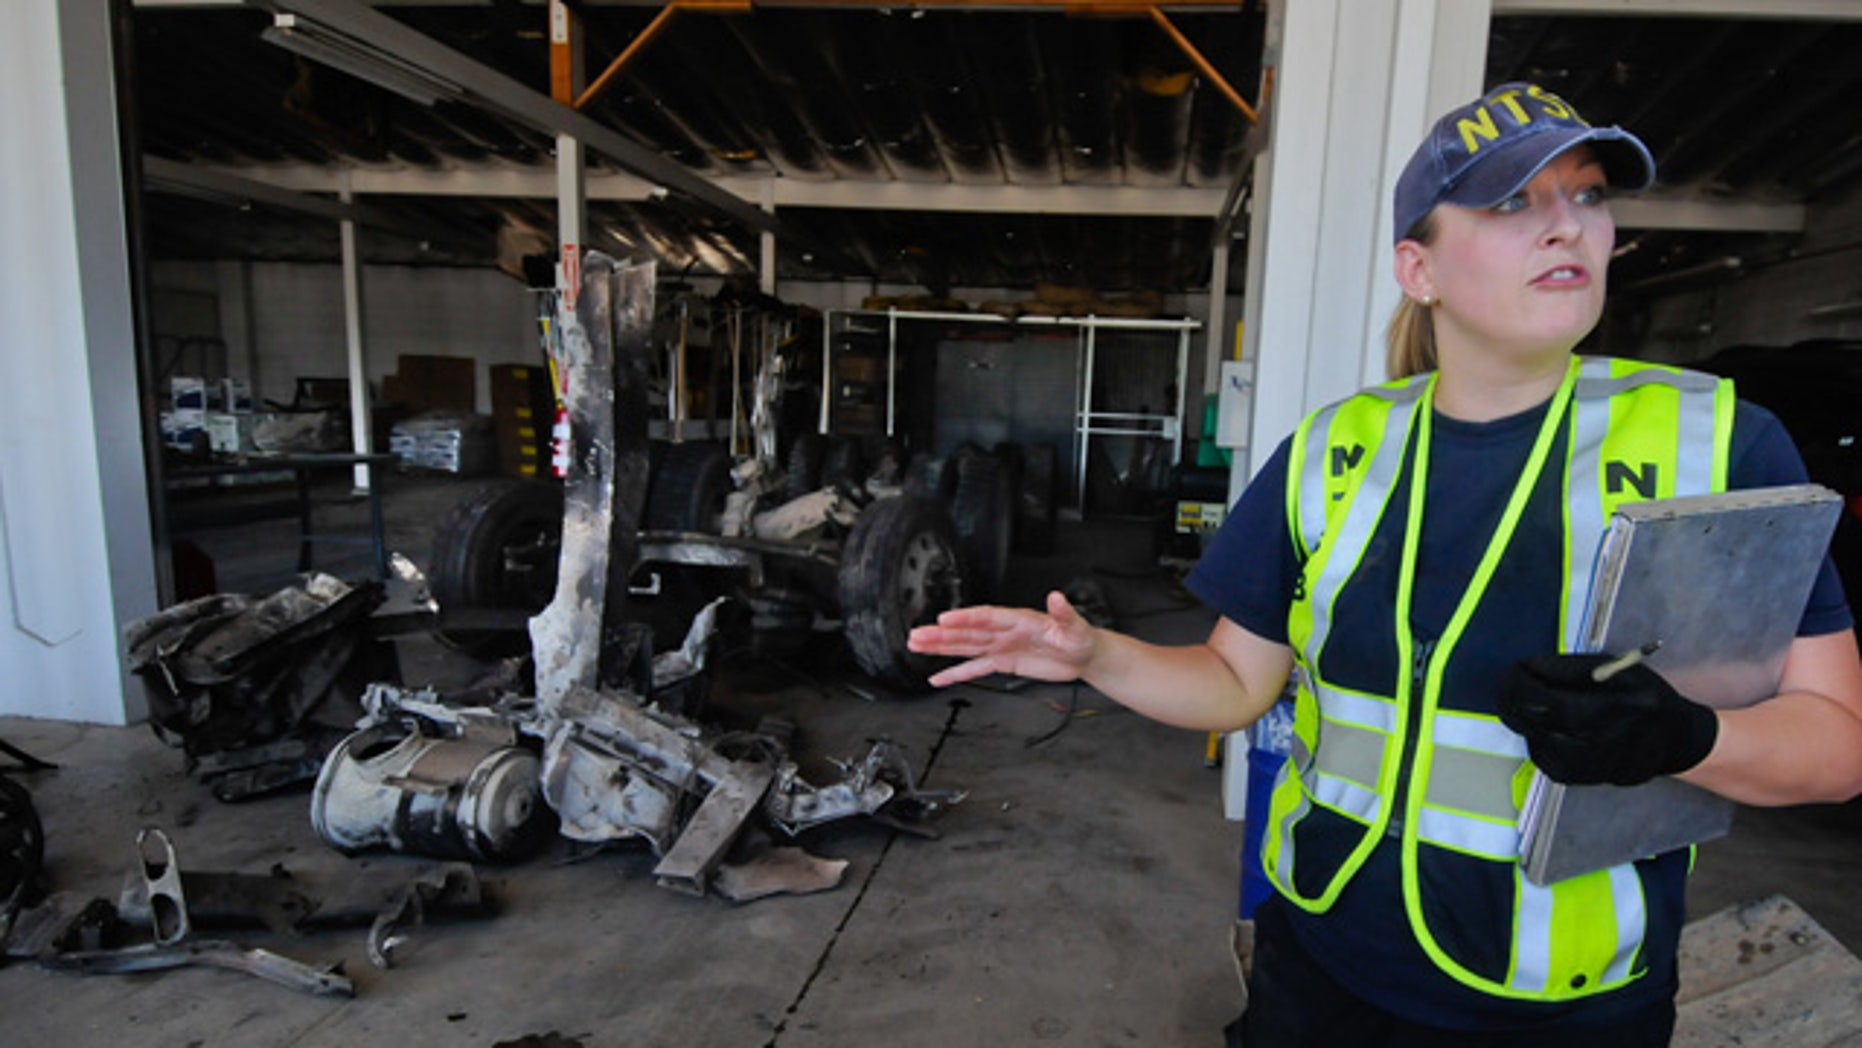 June 27: Jennifer Morrison, investigator from the NTSB, briefs the media on the wreckage recovery efforts of the 2008 Peterbilt 367 truck-tractor at the Nevada Department of Transportation maintenance facility in Fallon, Nev.